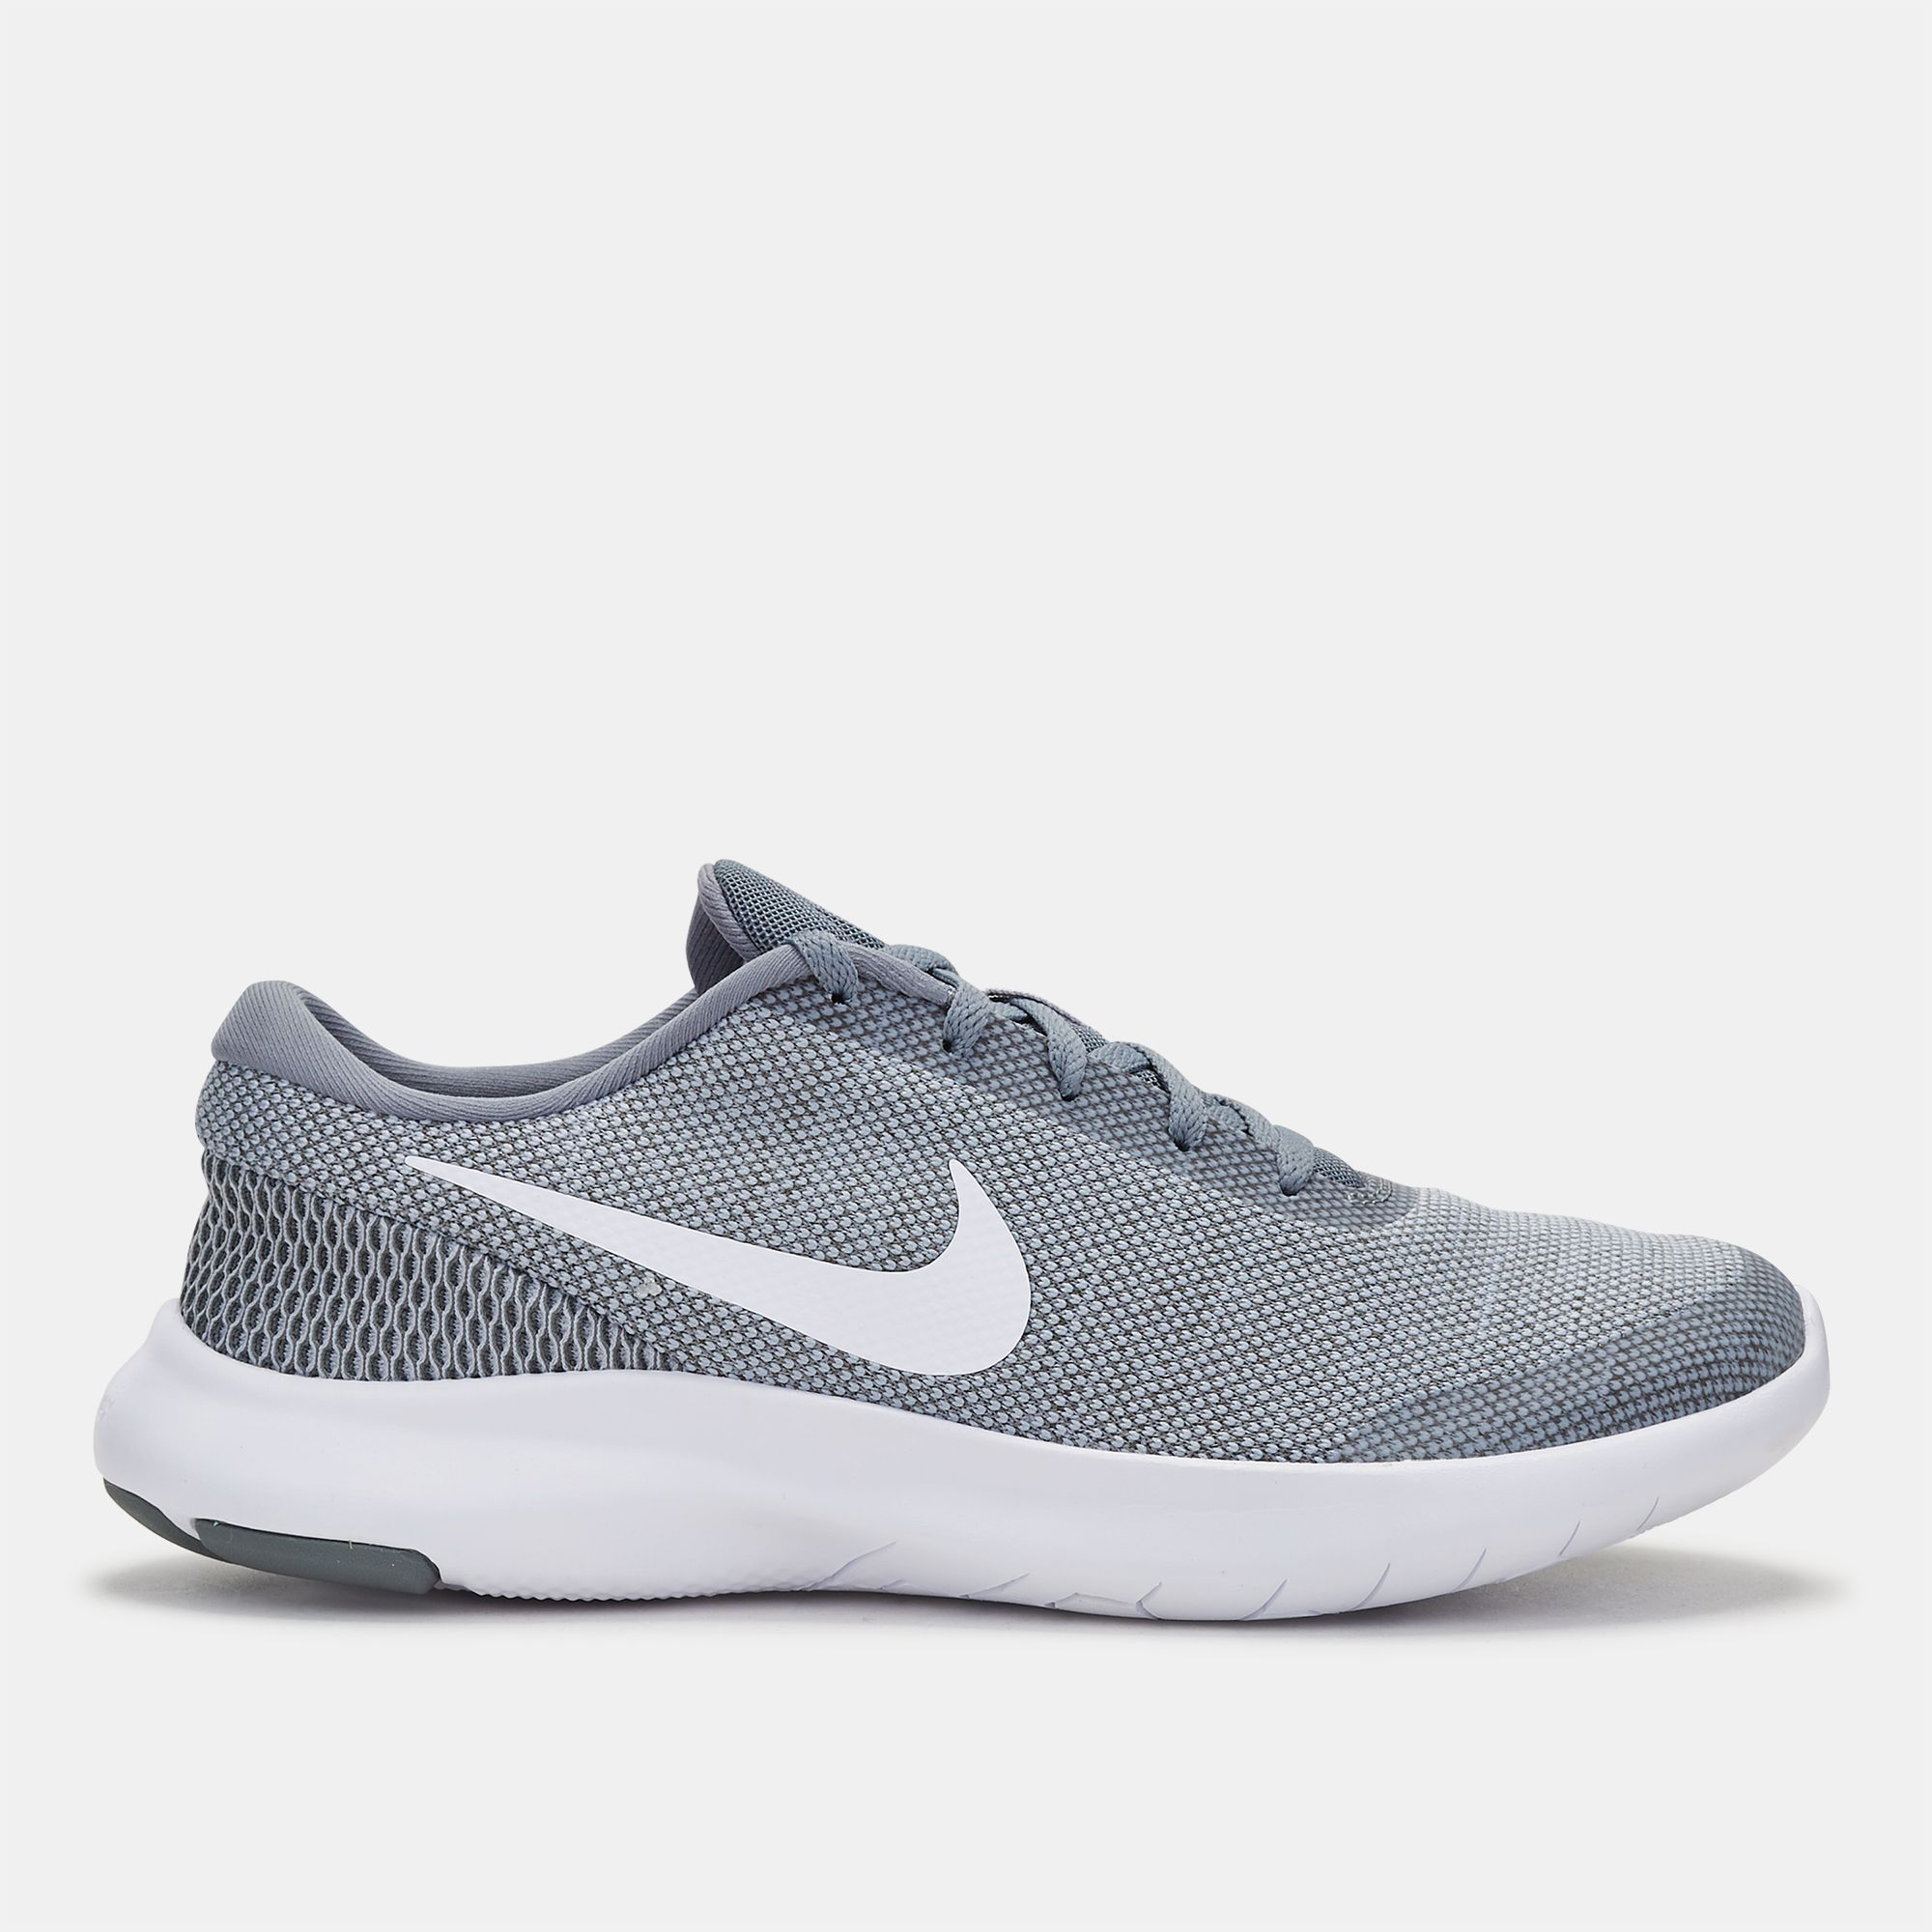 46dda224c70 Shop Grey Nike Flex Experience RN 7 Running Shoe for Womens by Nike ...